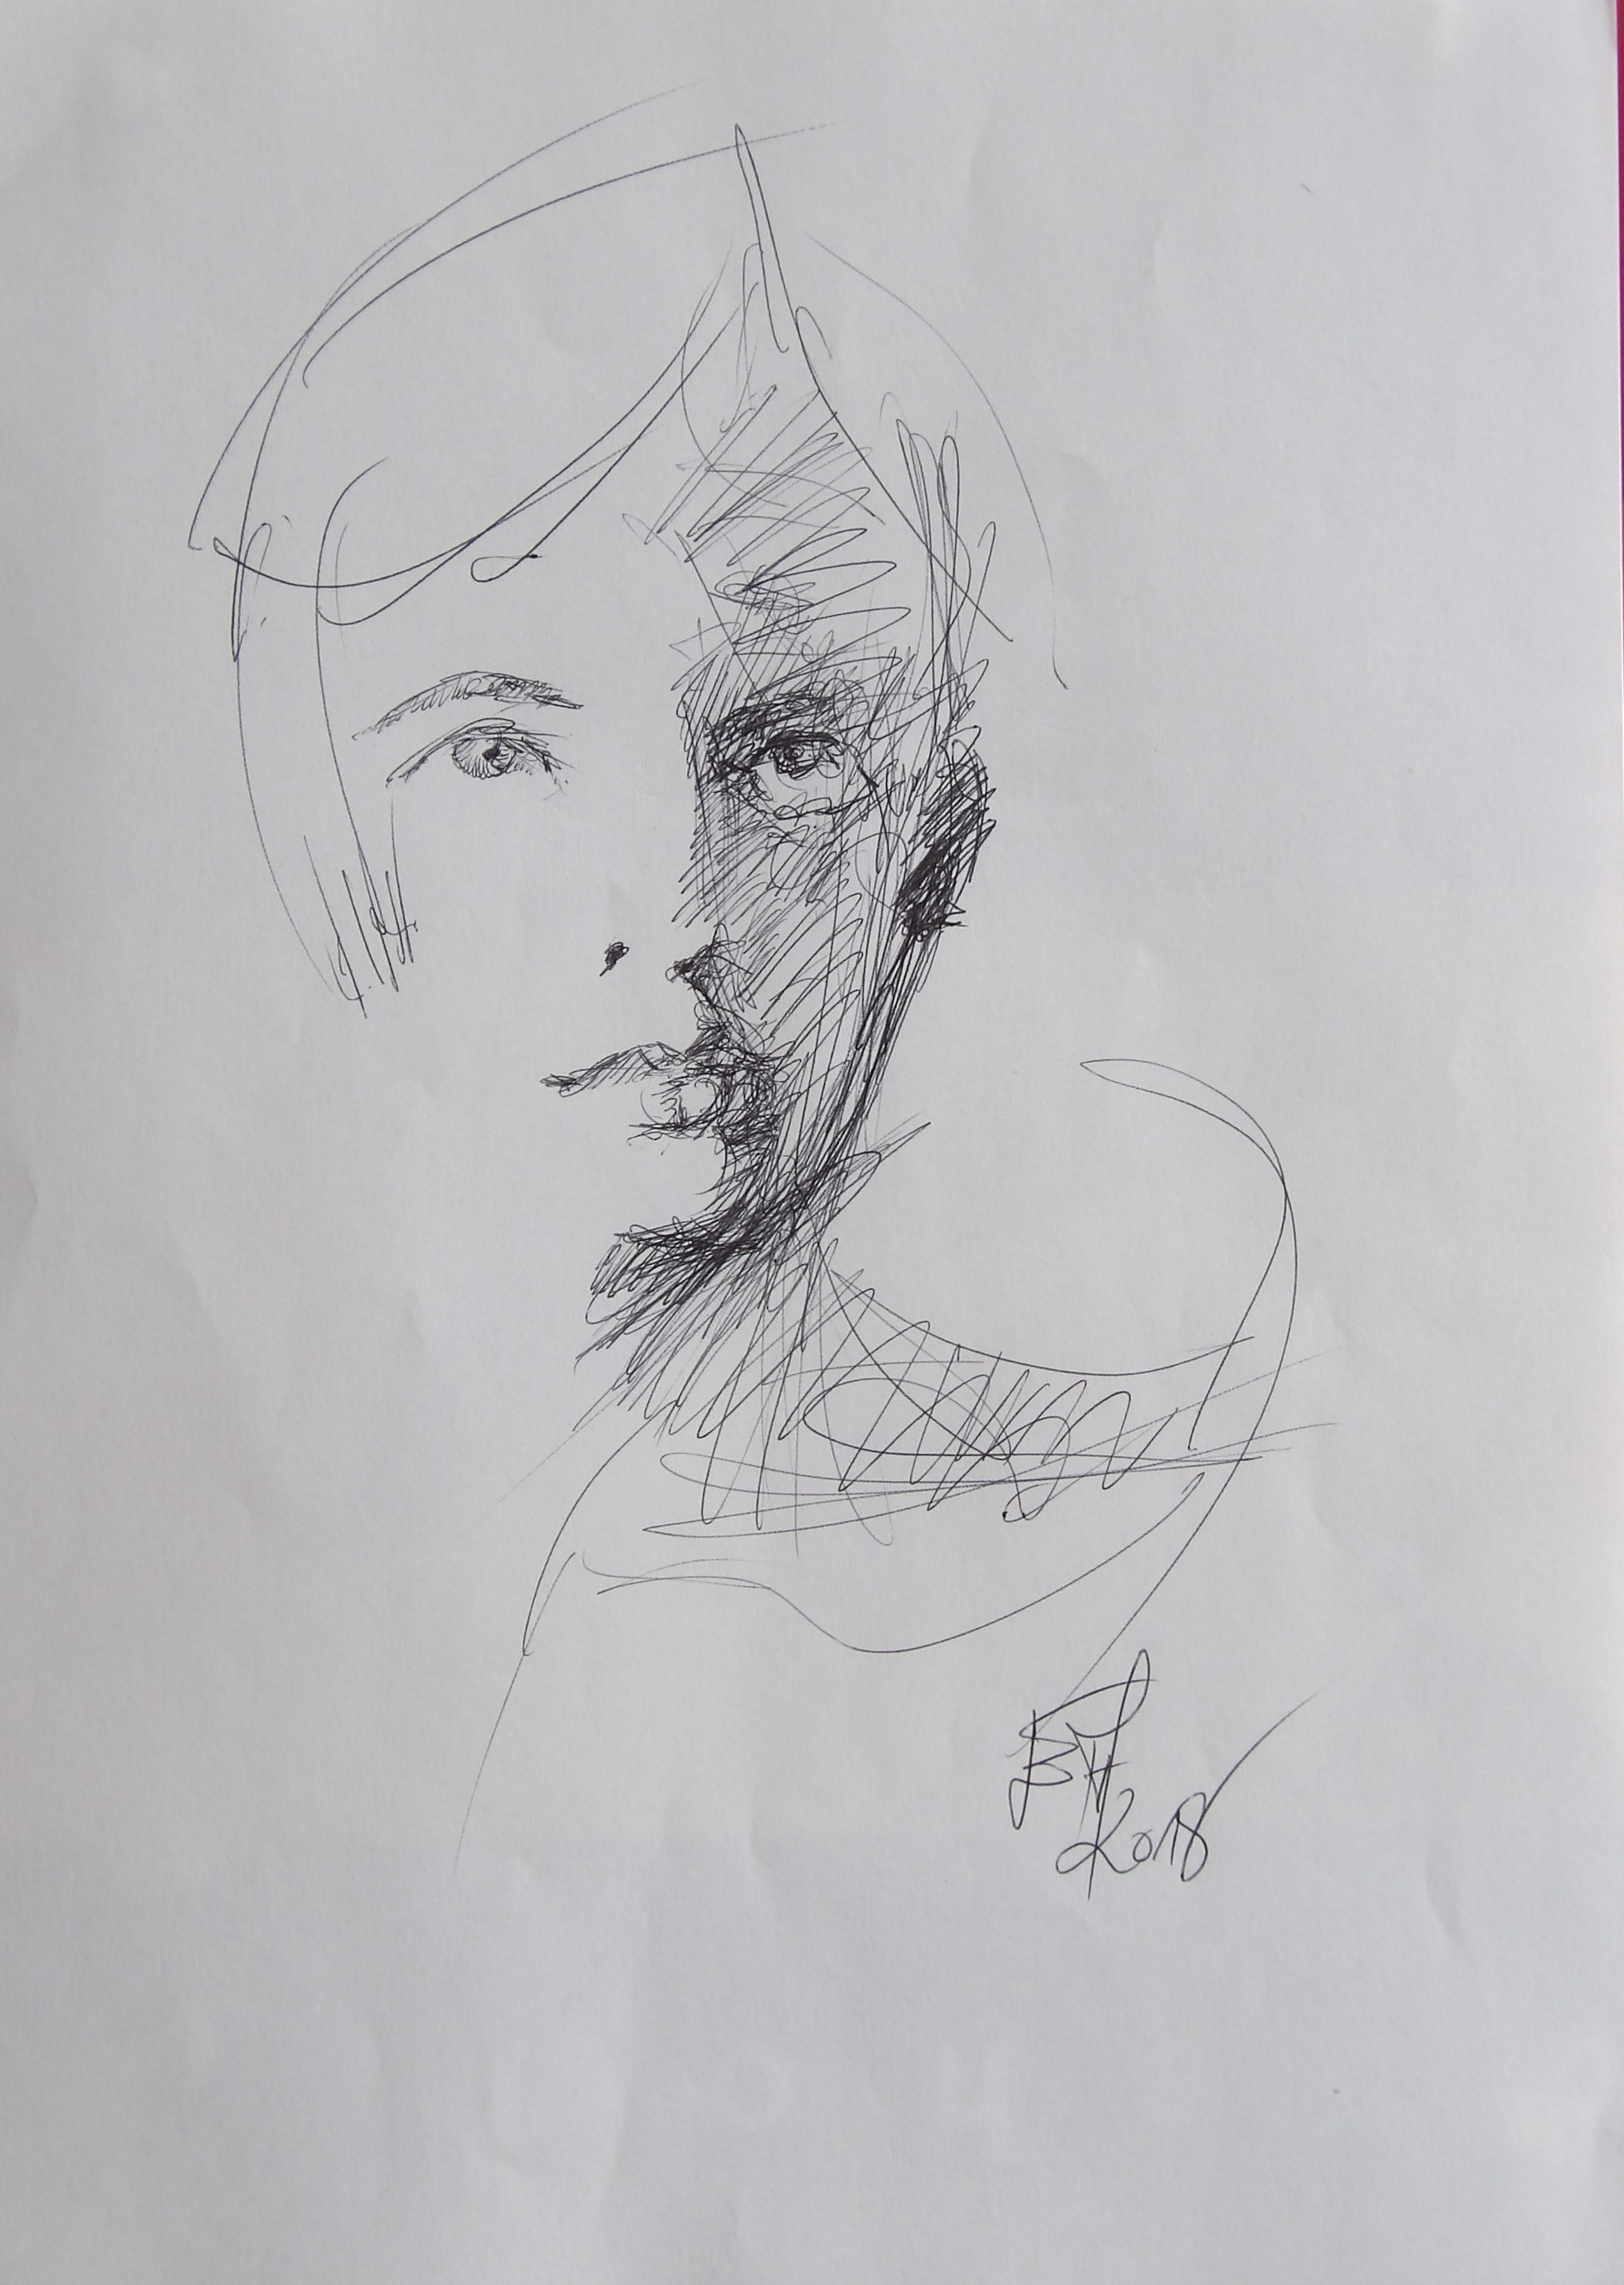 Dessins d'après les screen test d'Andy Warhol  shot between 1963 and 1966 -16 -richard rheem 1964 - 2018